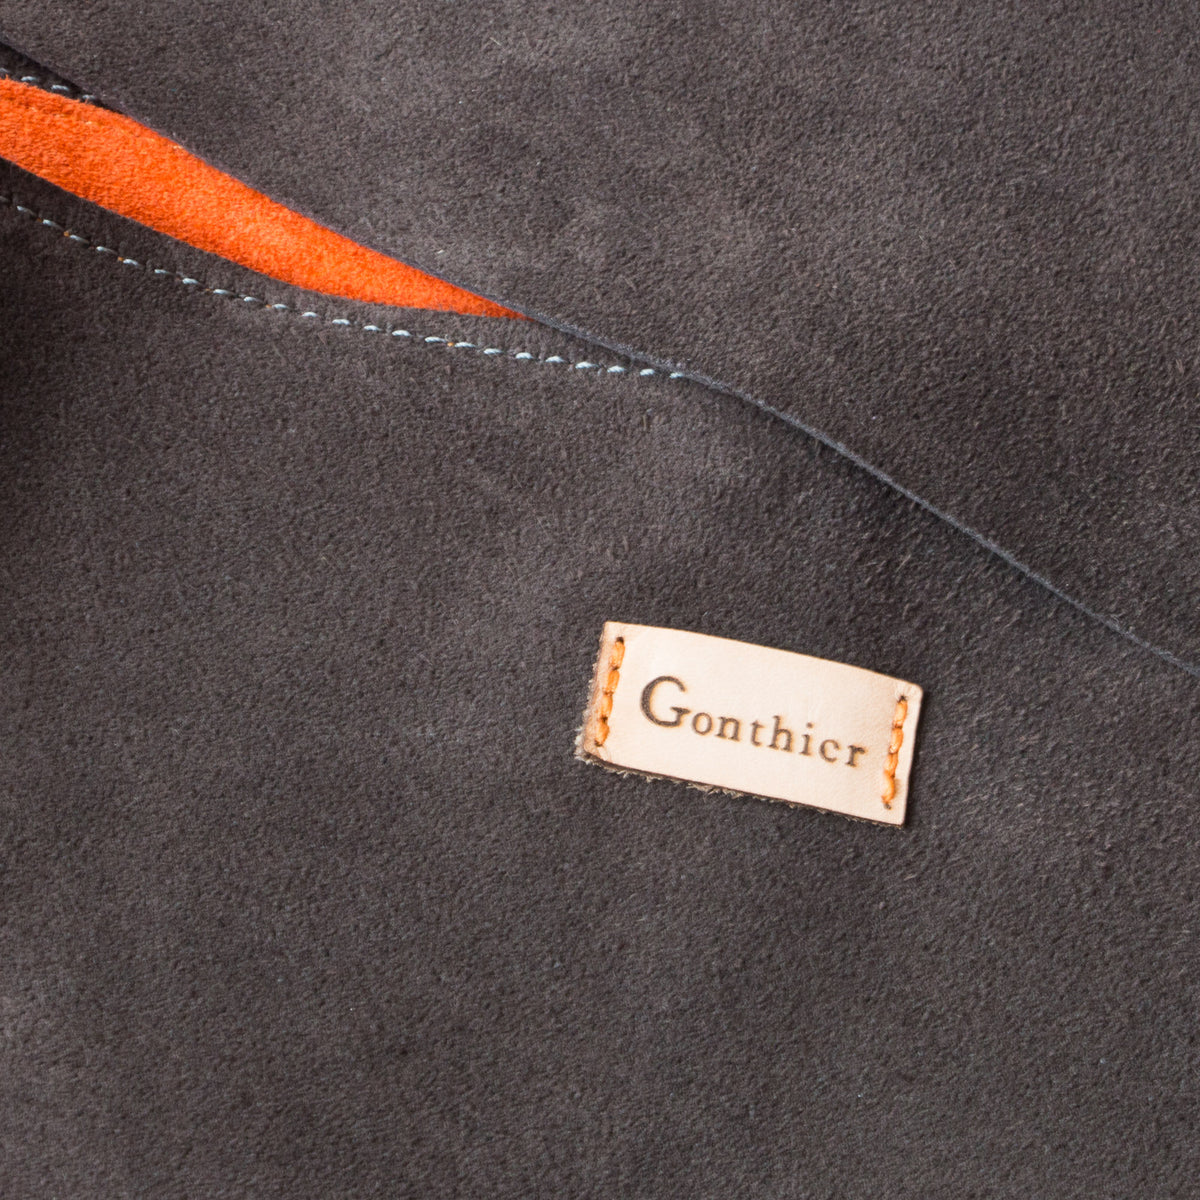 Detail - Greystone & Orange - Handmade Flap Purse in Calf Suede & Pork Suede Lining - Sold by Chic & Basta